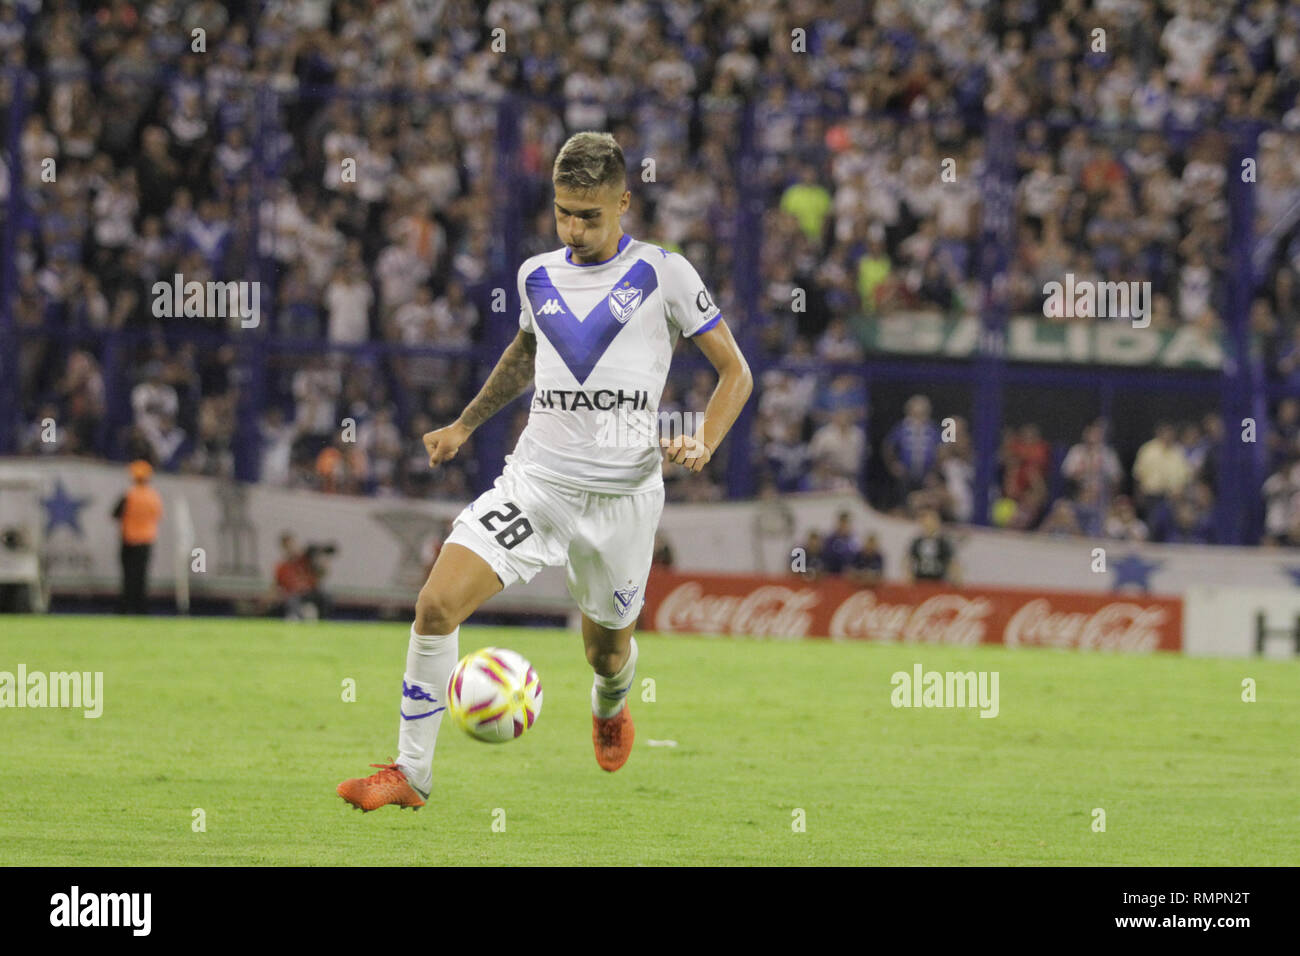 Buenos Aires, Argentina. 15th Feb, 2019. Nicolas Dominguez during the match between Vélez Sarsfield e Colon for Superliga Argentina, this friday on José Amalfitani Stadium on Buenos Aires, Argentina. ( Credit: Néstor J. Beremblum/Alamy Live News - Stock Image